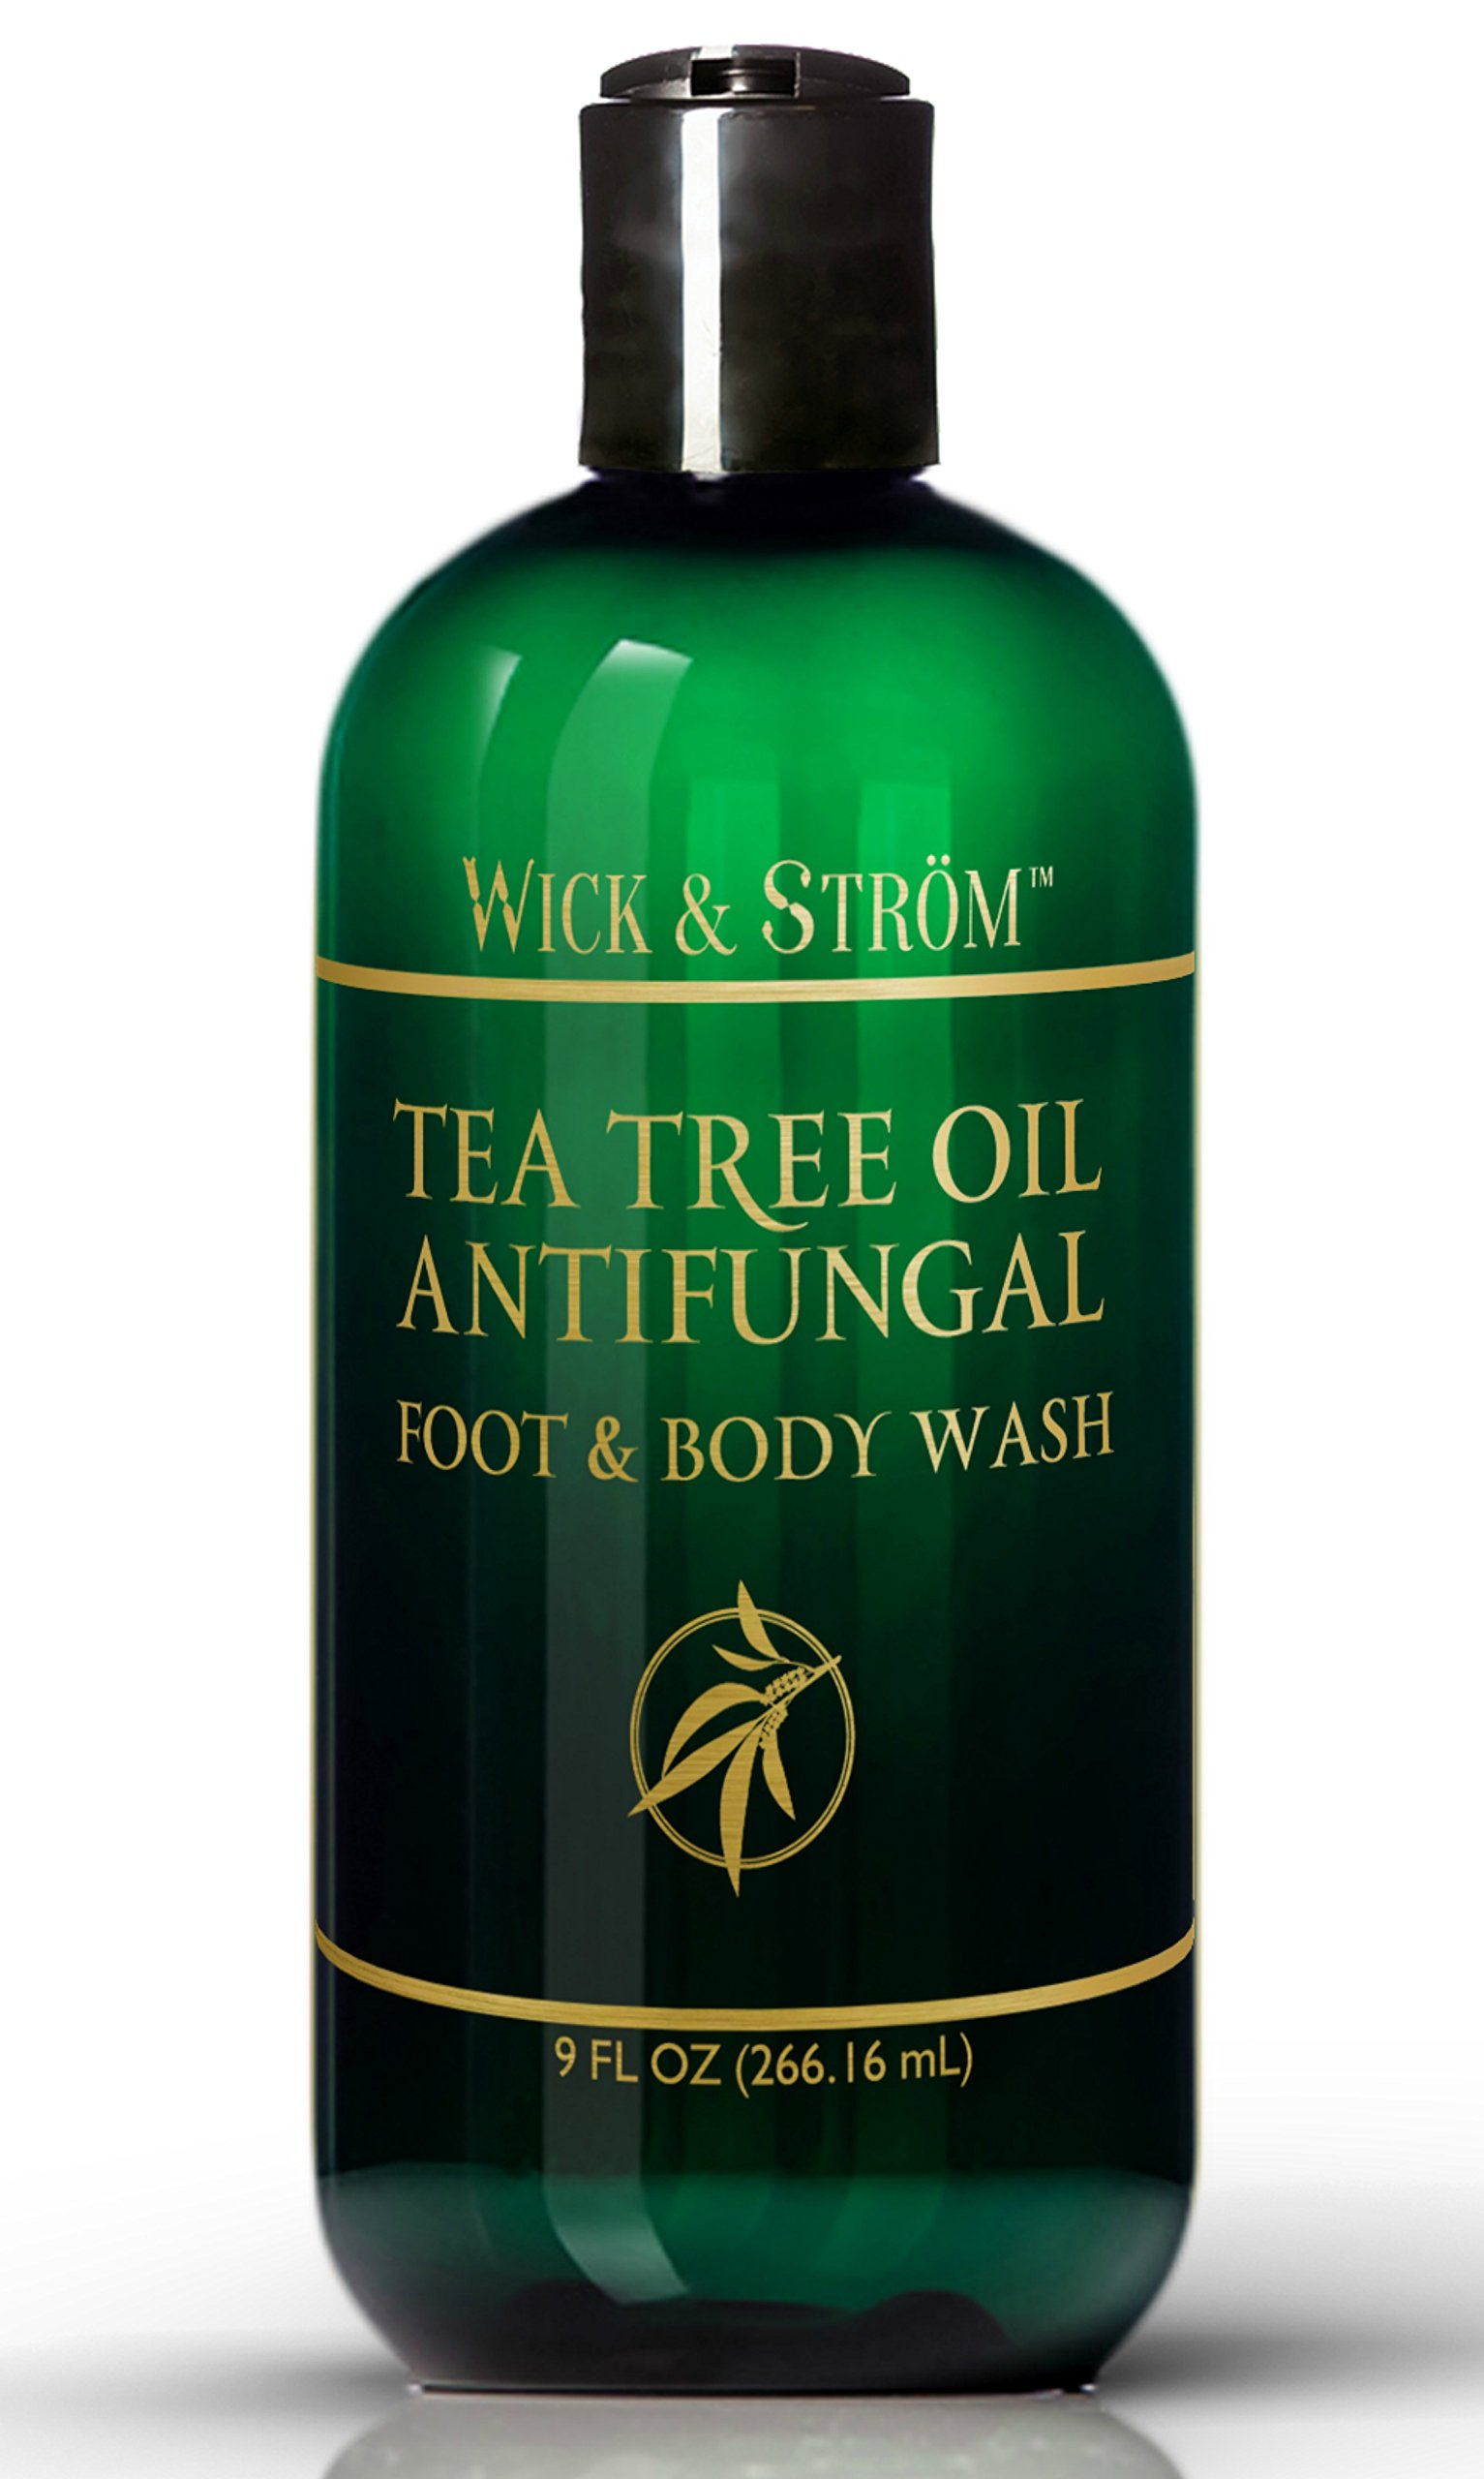 Antifungal Soap with Tea Tree Oil & Active Ingredient Proven Clinically Effective in Athletes Foot, Jock Itch & Ringworm Treatment. Body Wash Helps Body Acne & Odor - 9 oz (1pk)